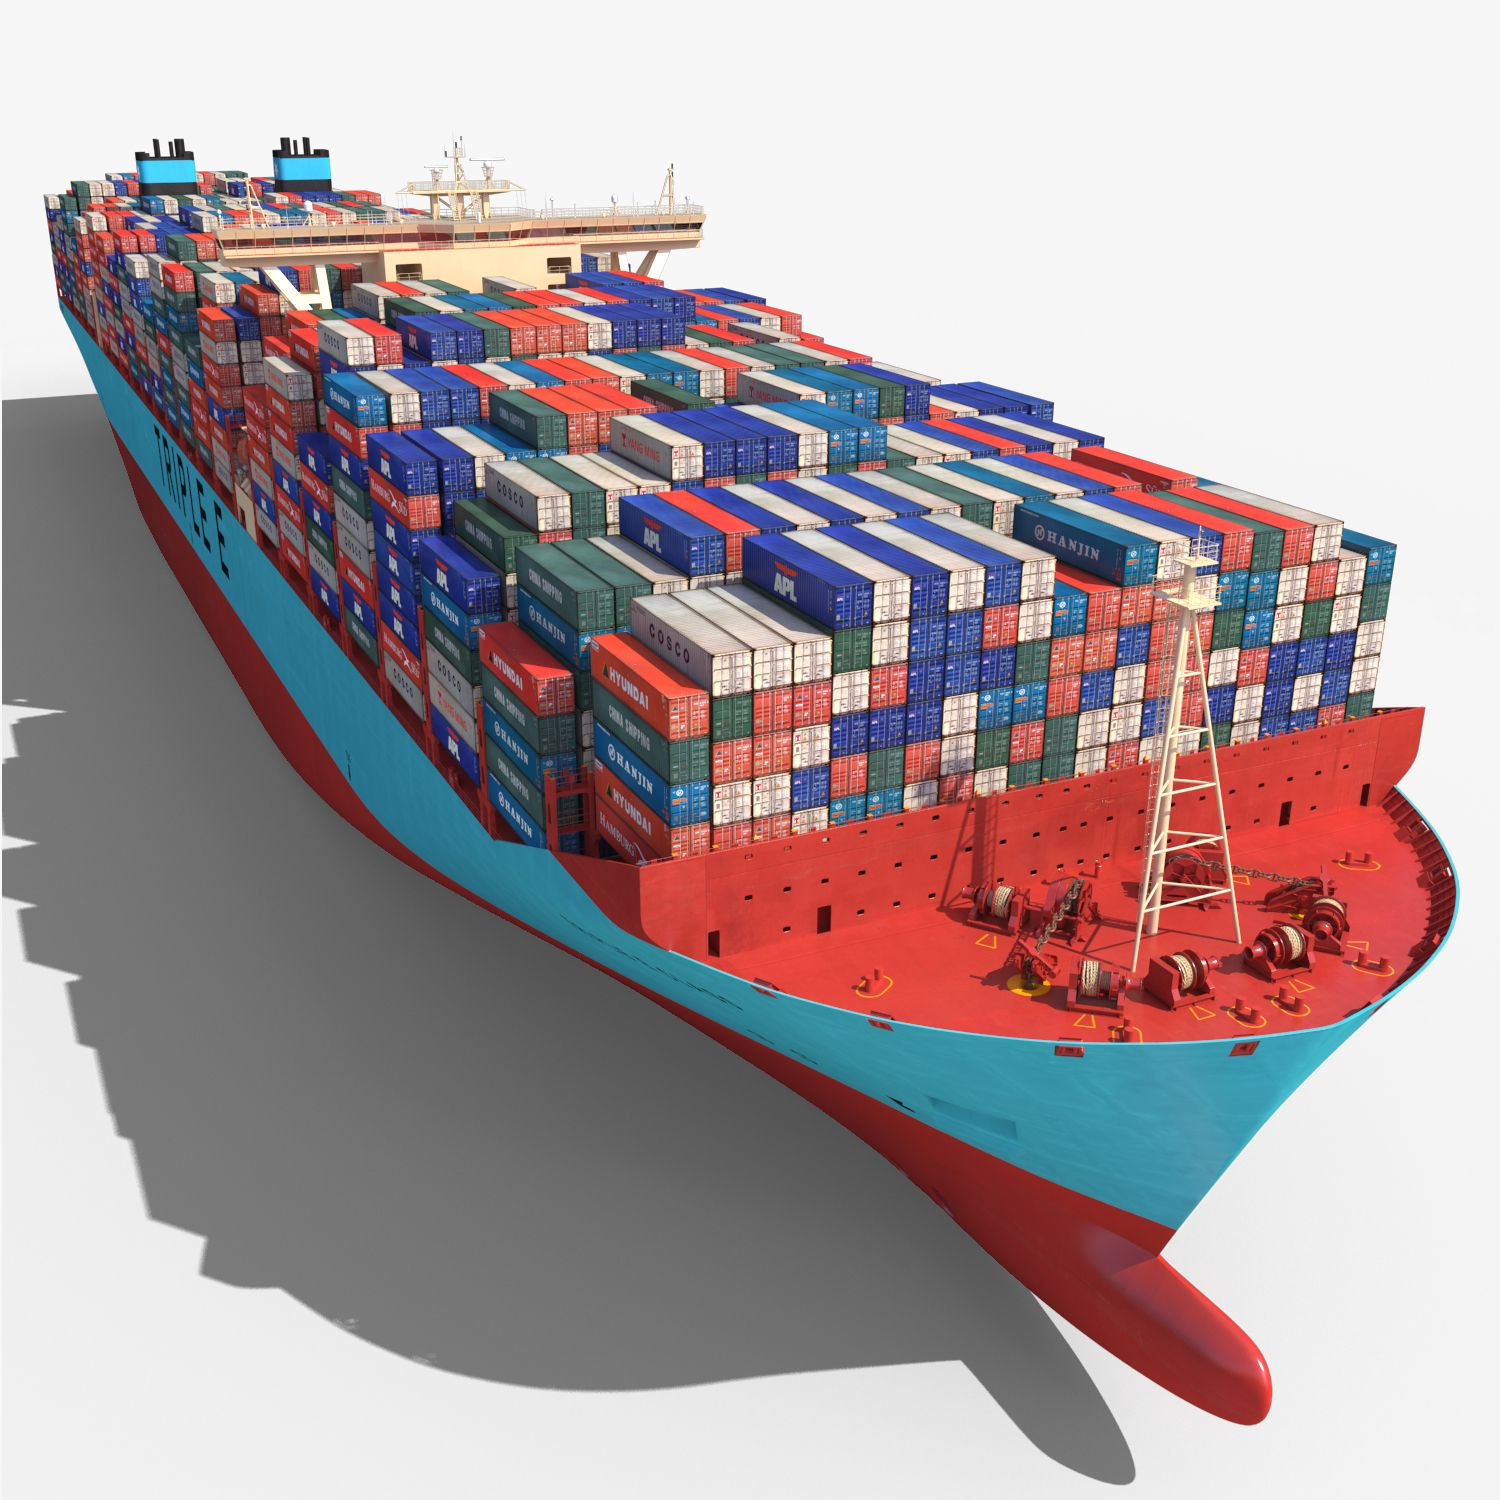 3ds Max Triple E Class Container Ship Https Static Turbosquid Com Preview 2015 06 06 19 38 10 V1247 Jpgaedb2a43 2359 467e 8139 0c3 In 2020 3ds Max Model Boats Ship